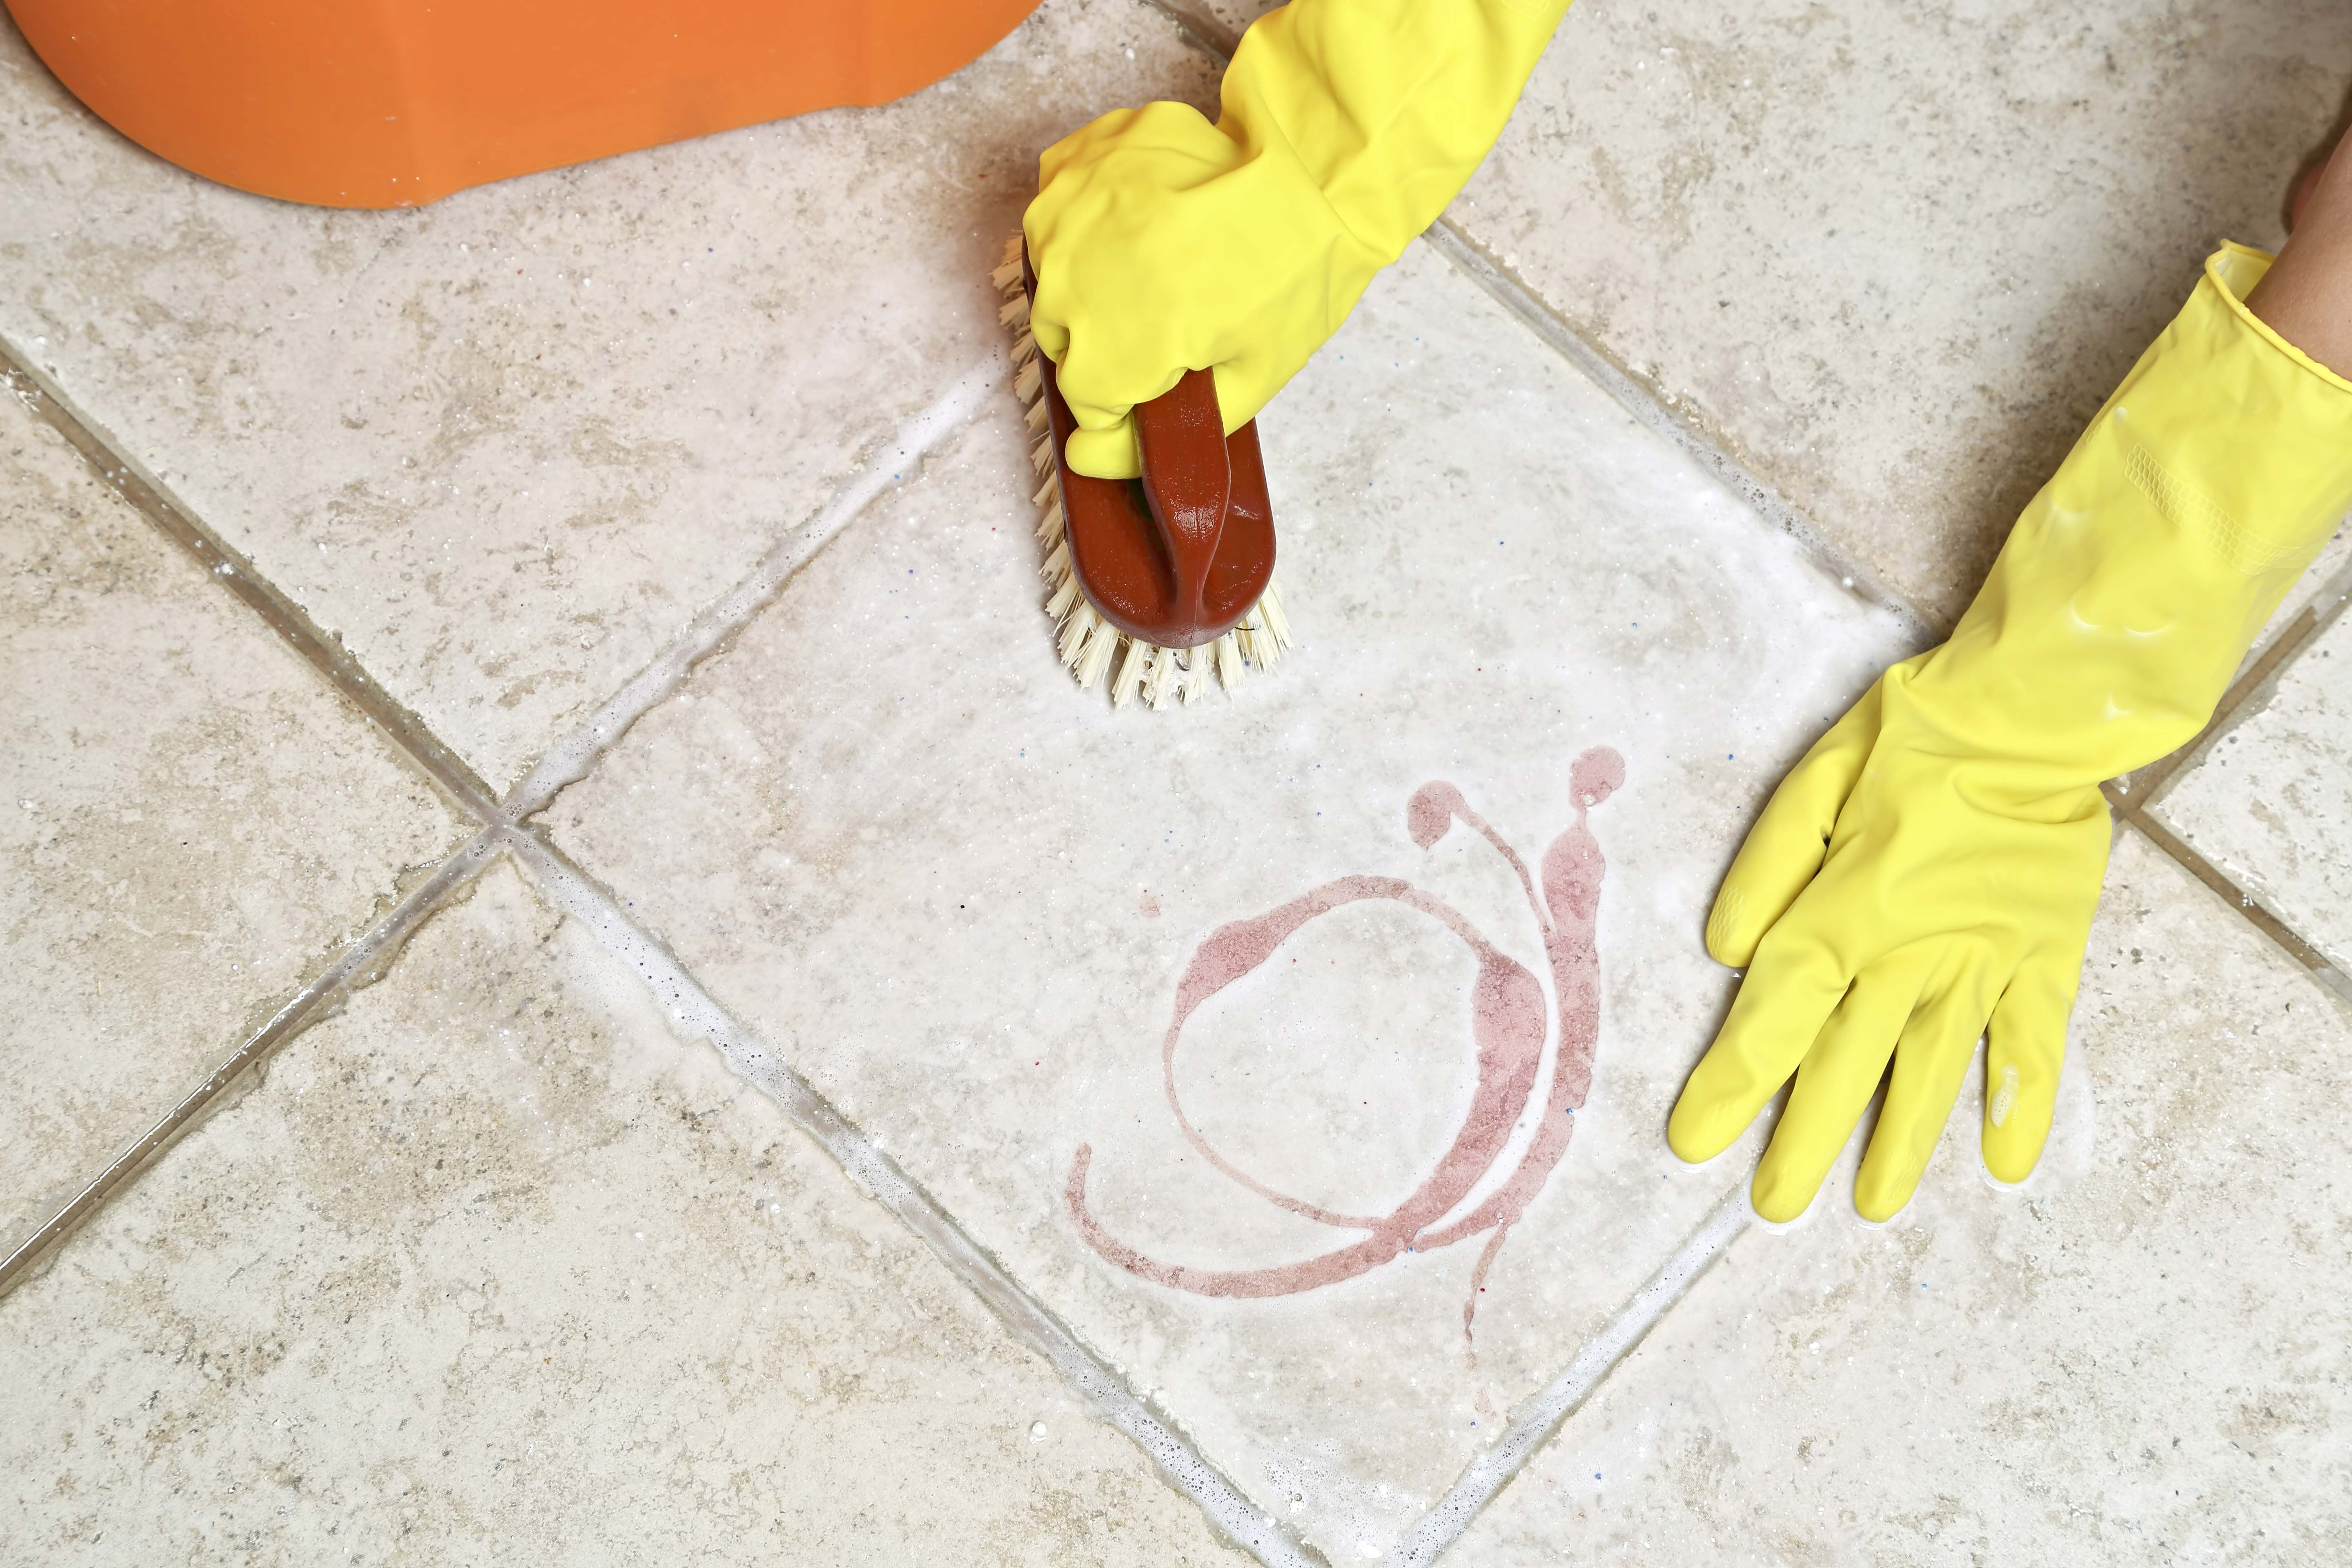 Generally, cleaning a concrete floor or wooden floor